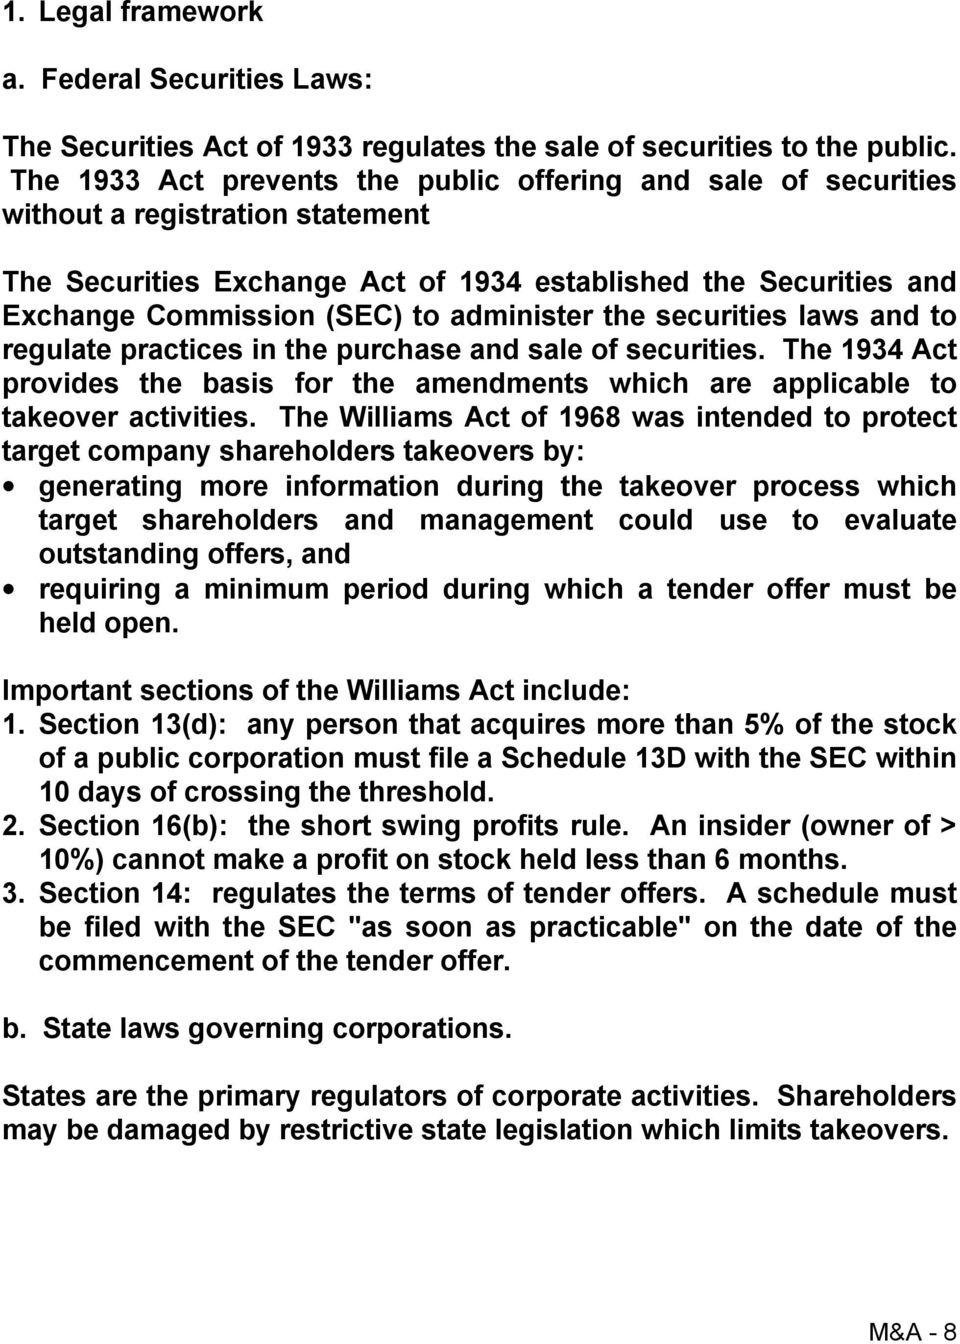 administer the securities laws and to regulate practices in the purchase and sale of securities. The 1934 Act provides the basis for the amendments which are applicable to takeover activities.